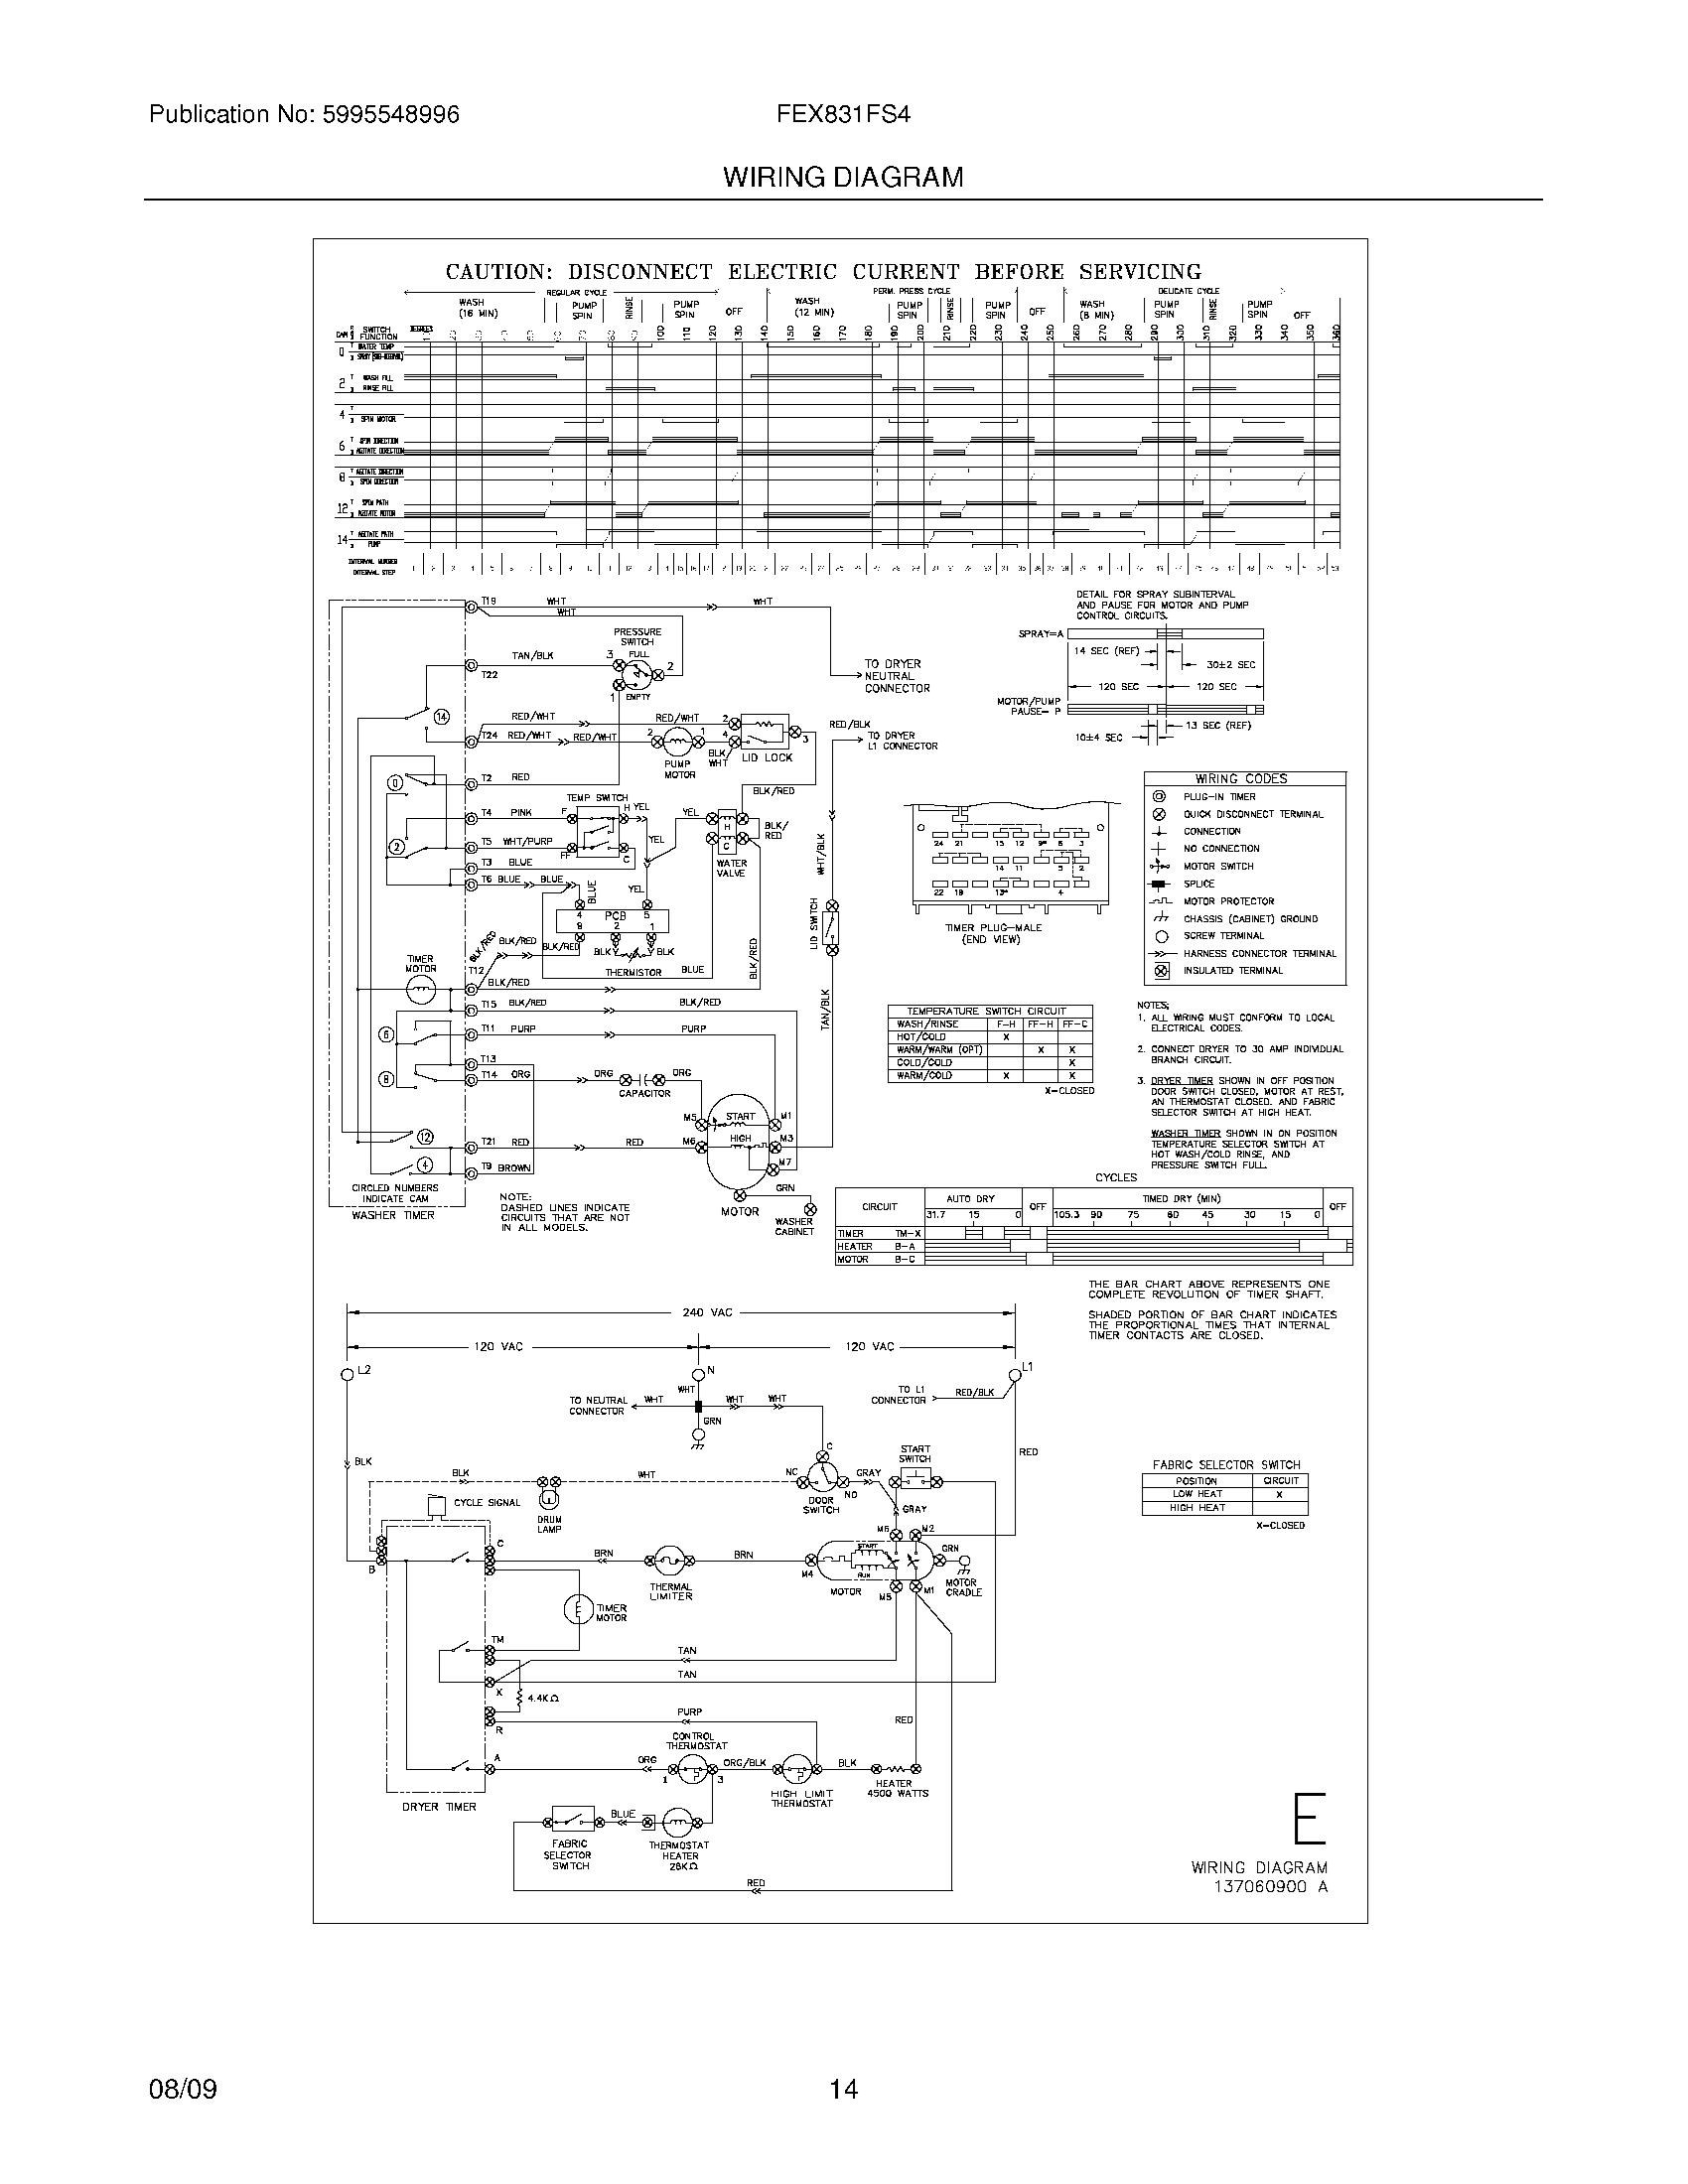 ElectroluxImg_19000101 20150717_00054183?width=1000 fex831fs4 frigidaire company appliance parts fex831fs4 wiring diagram at edmiracle.co